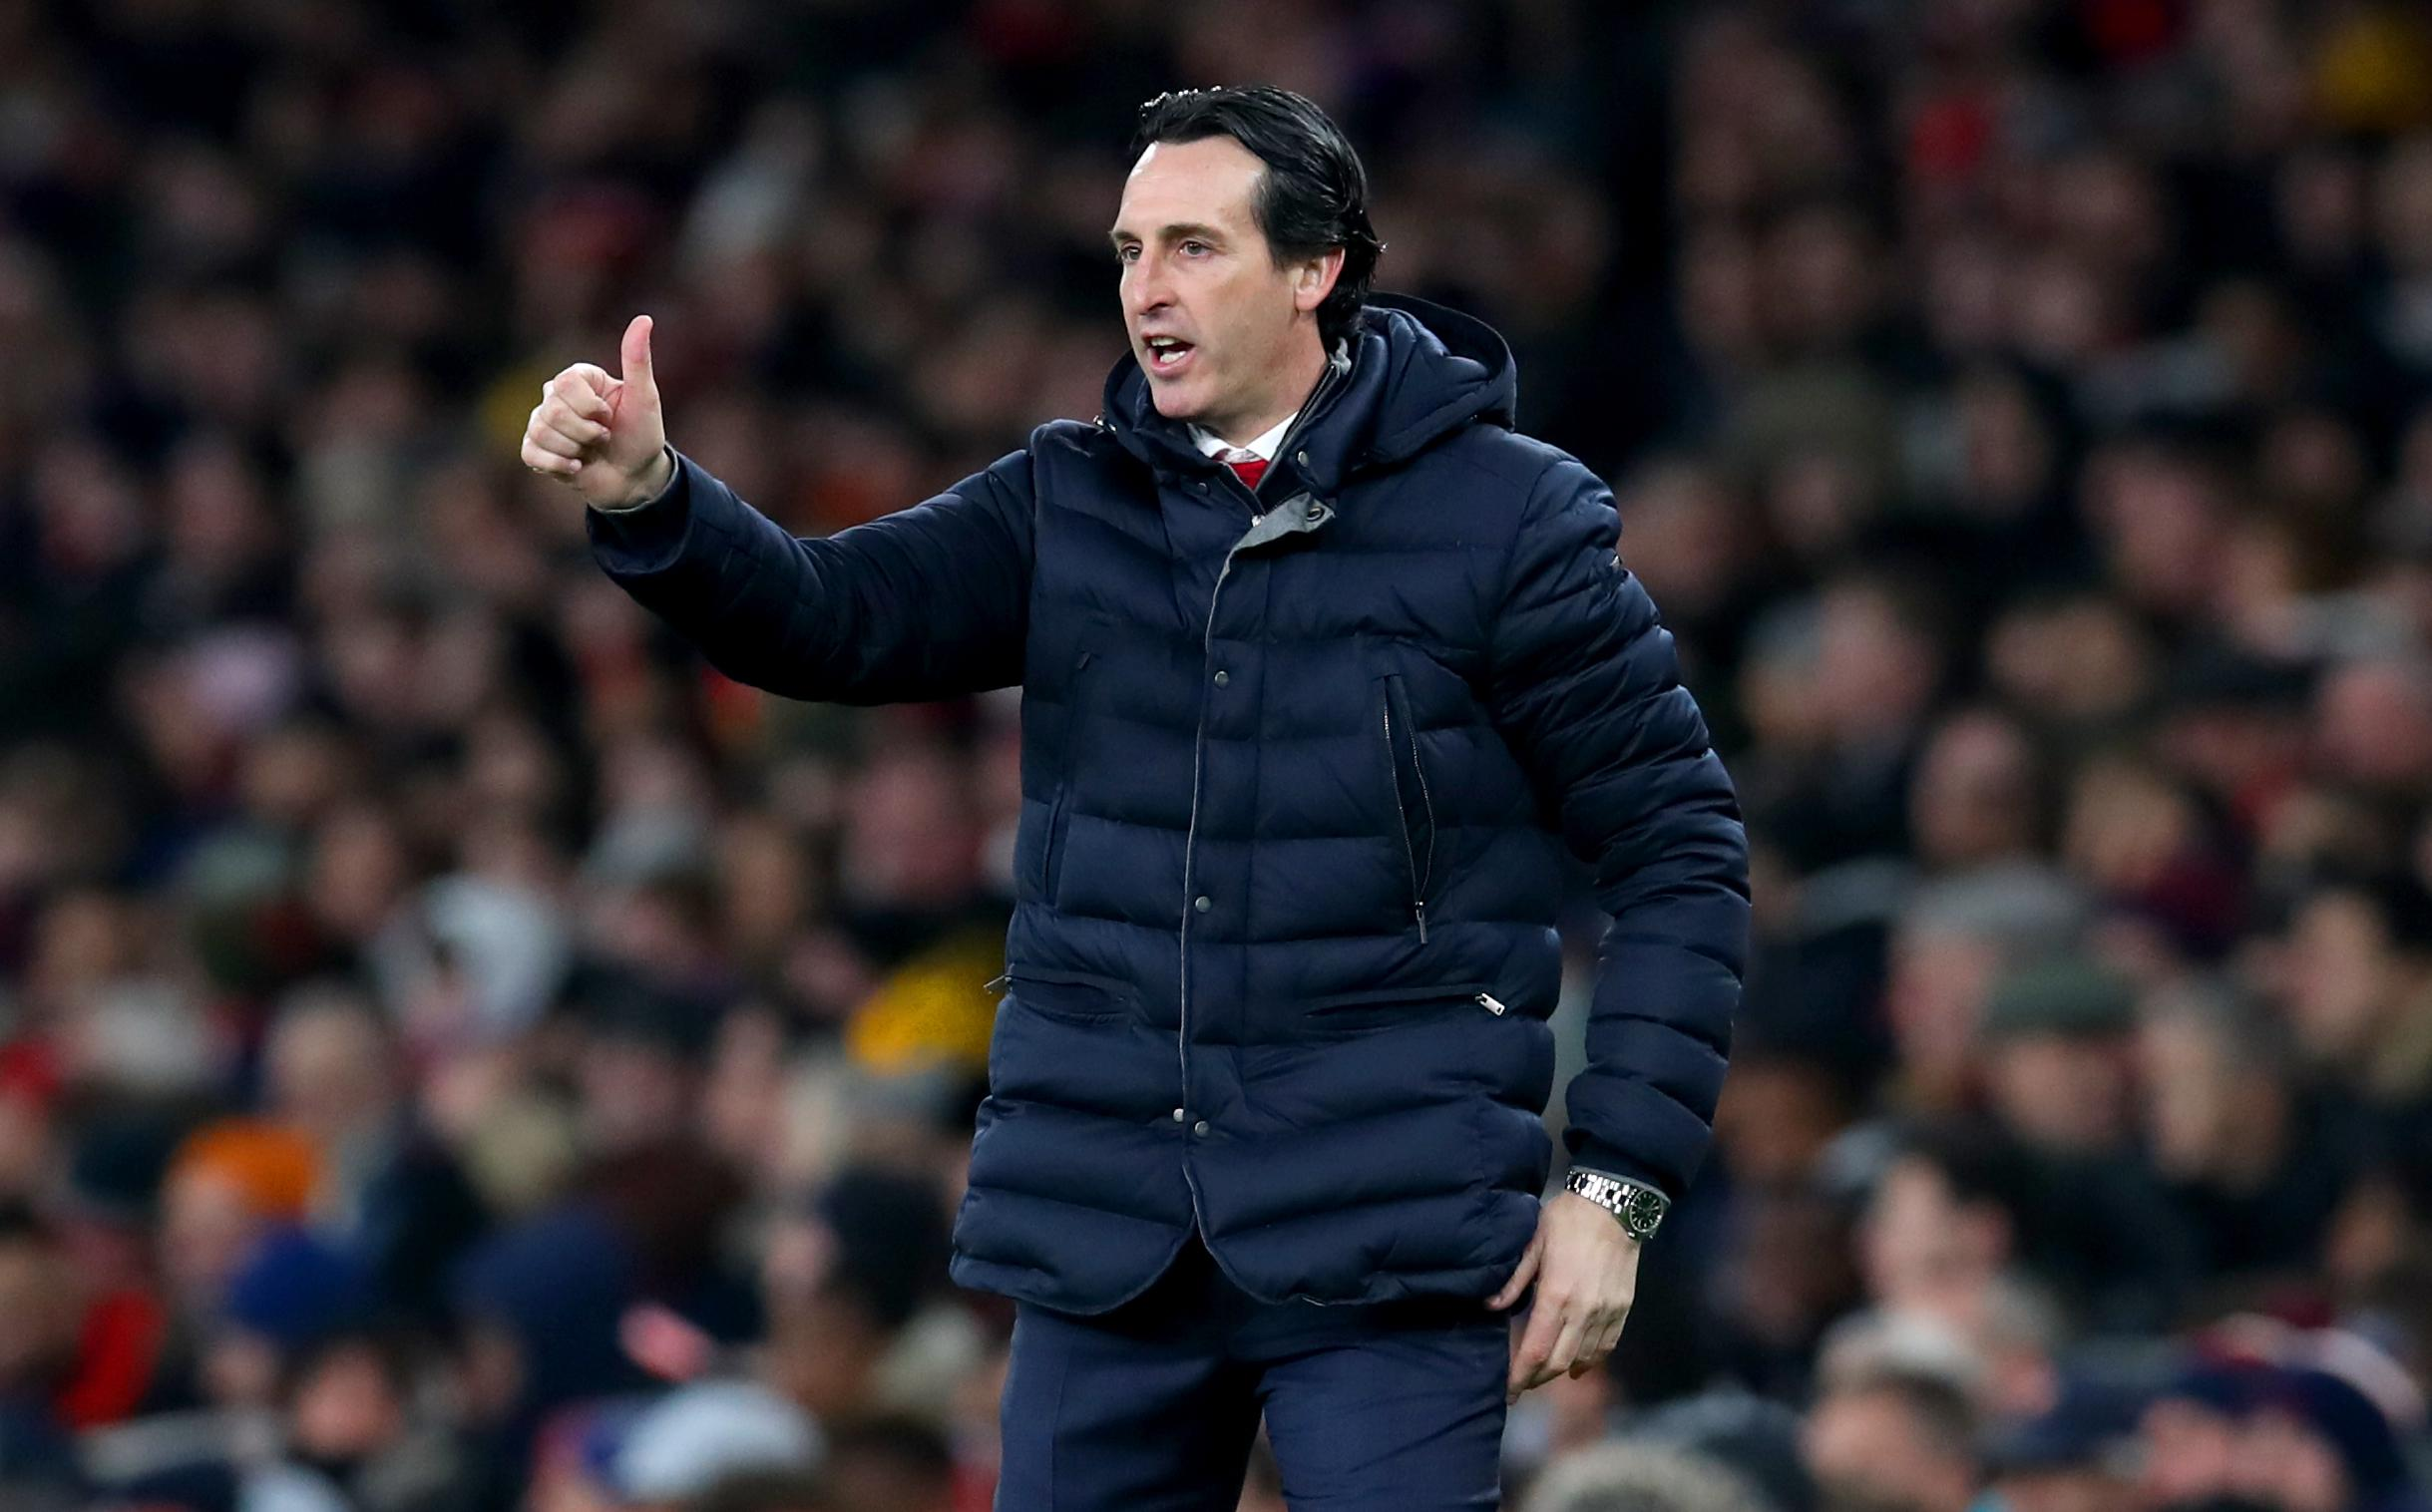 Unai Emery's side are fifth in the Premier League after 23 games